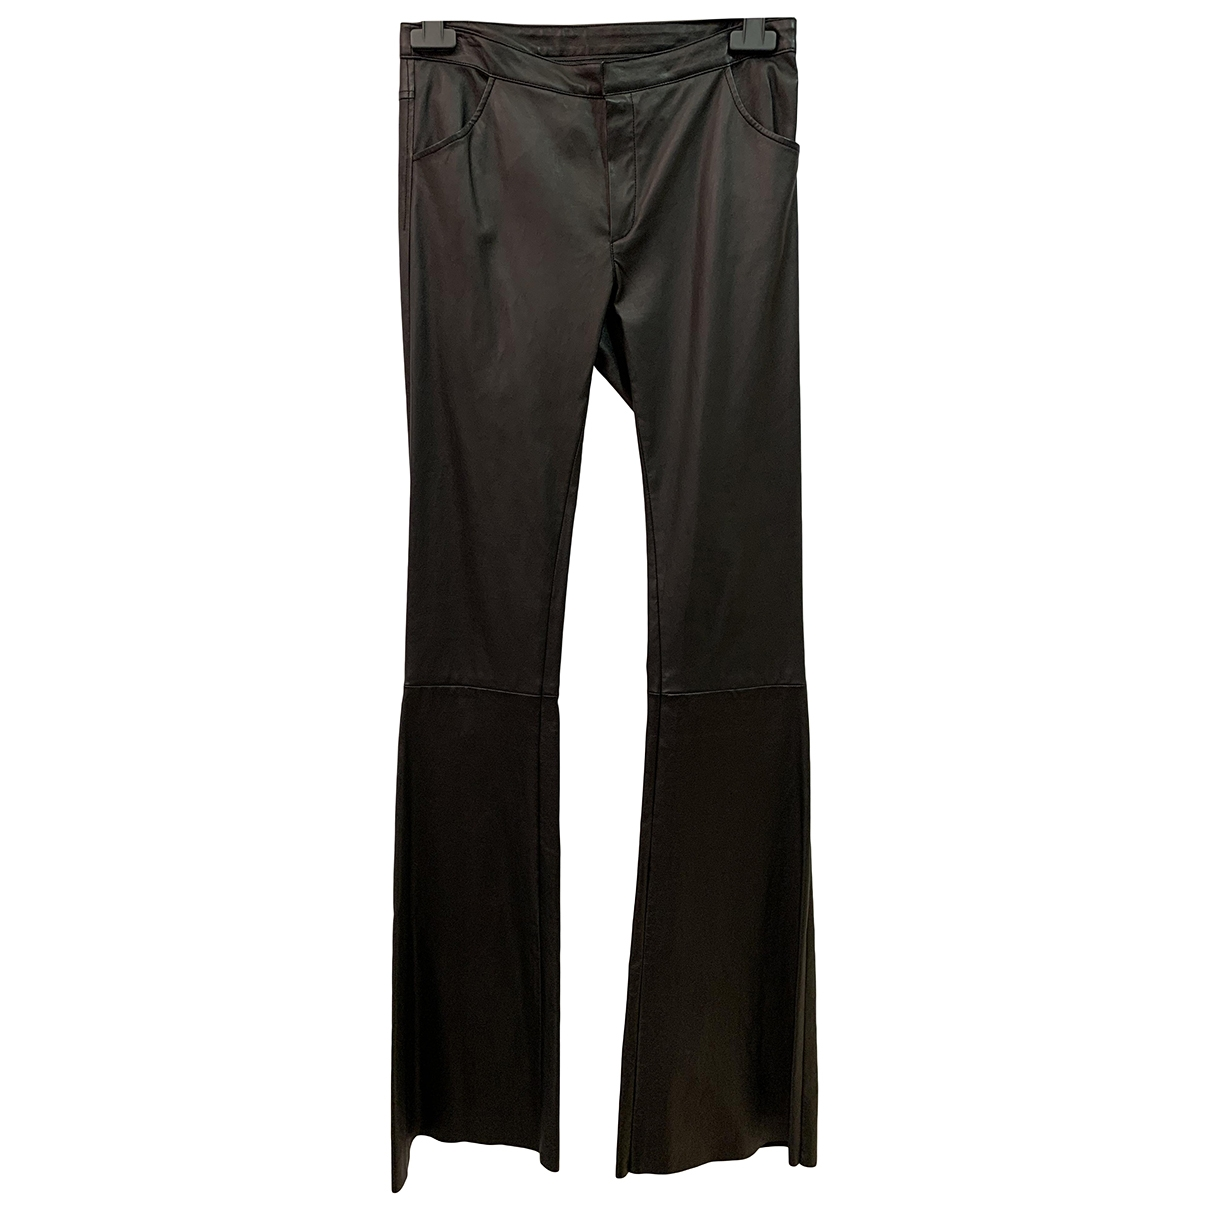 Drome \N Black Leather Trousers for Women S International